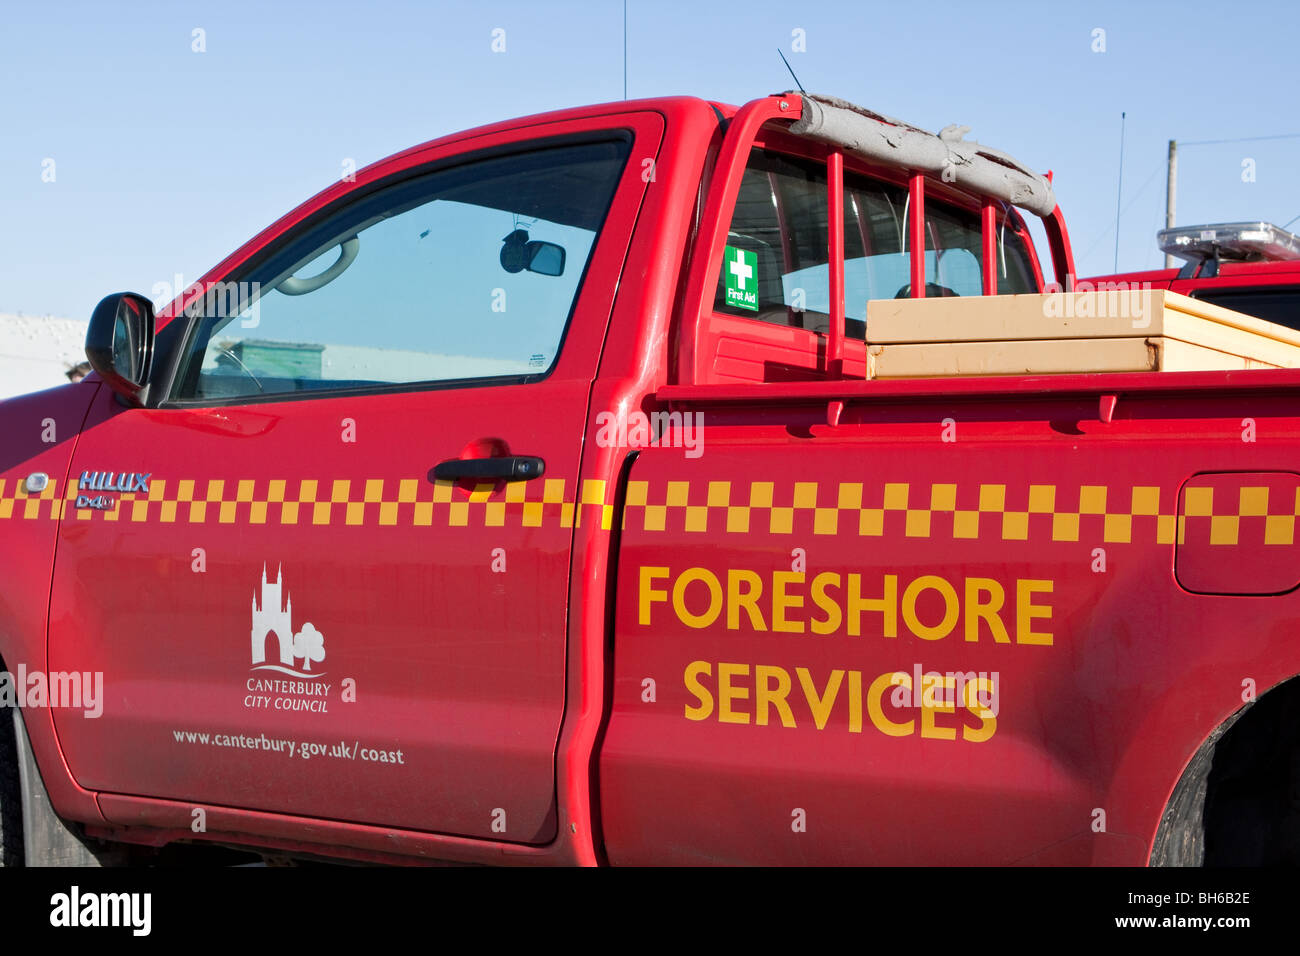 Foreshore Services Van Canterbury - Stock Image